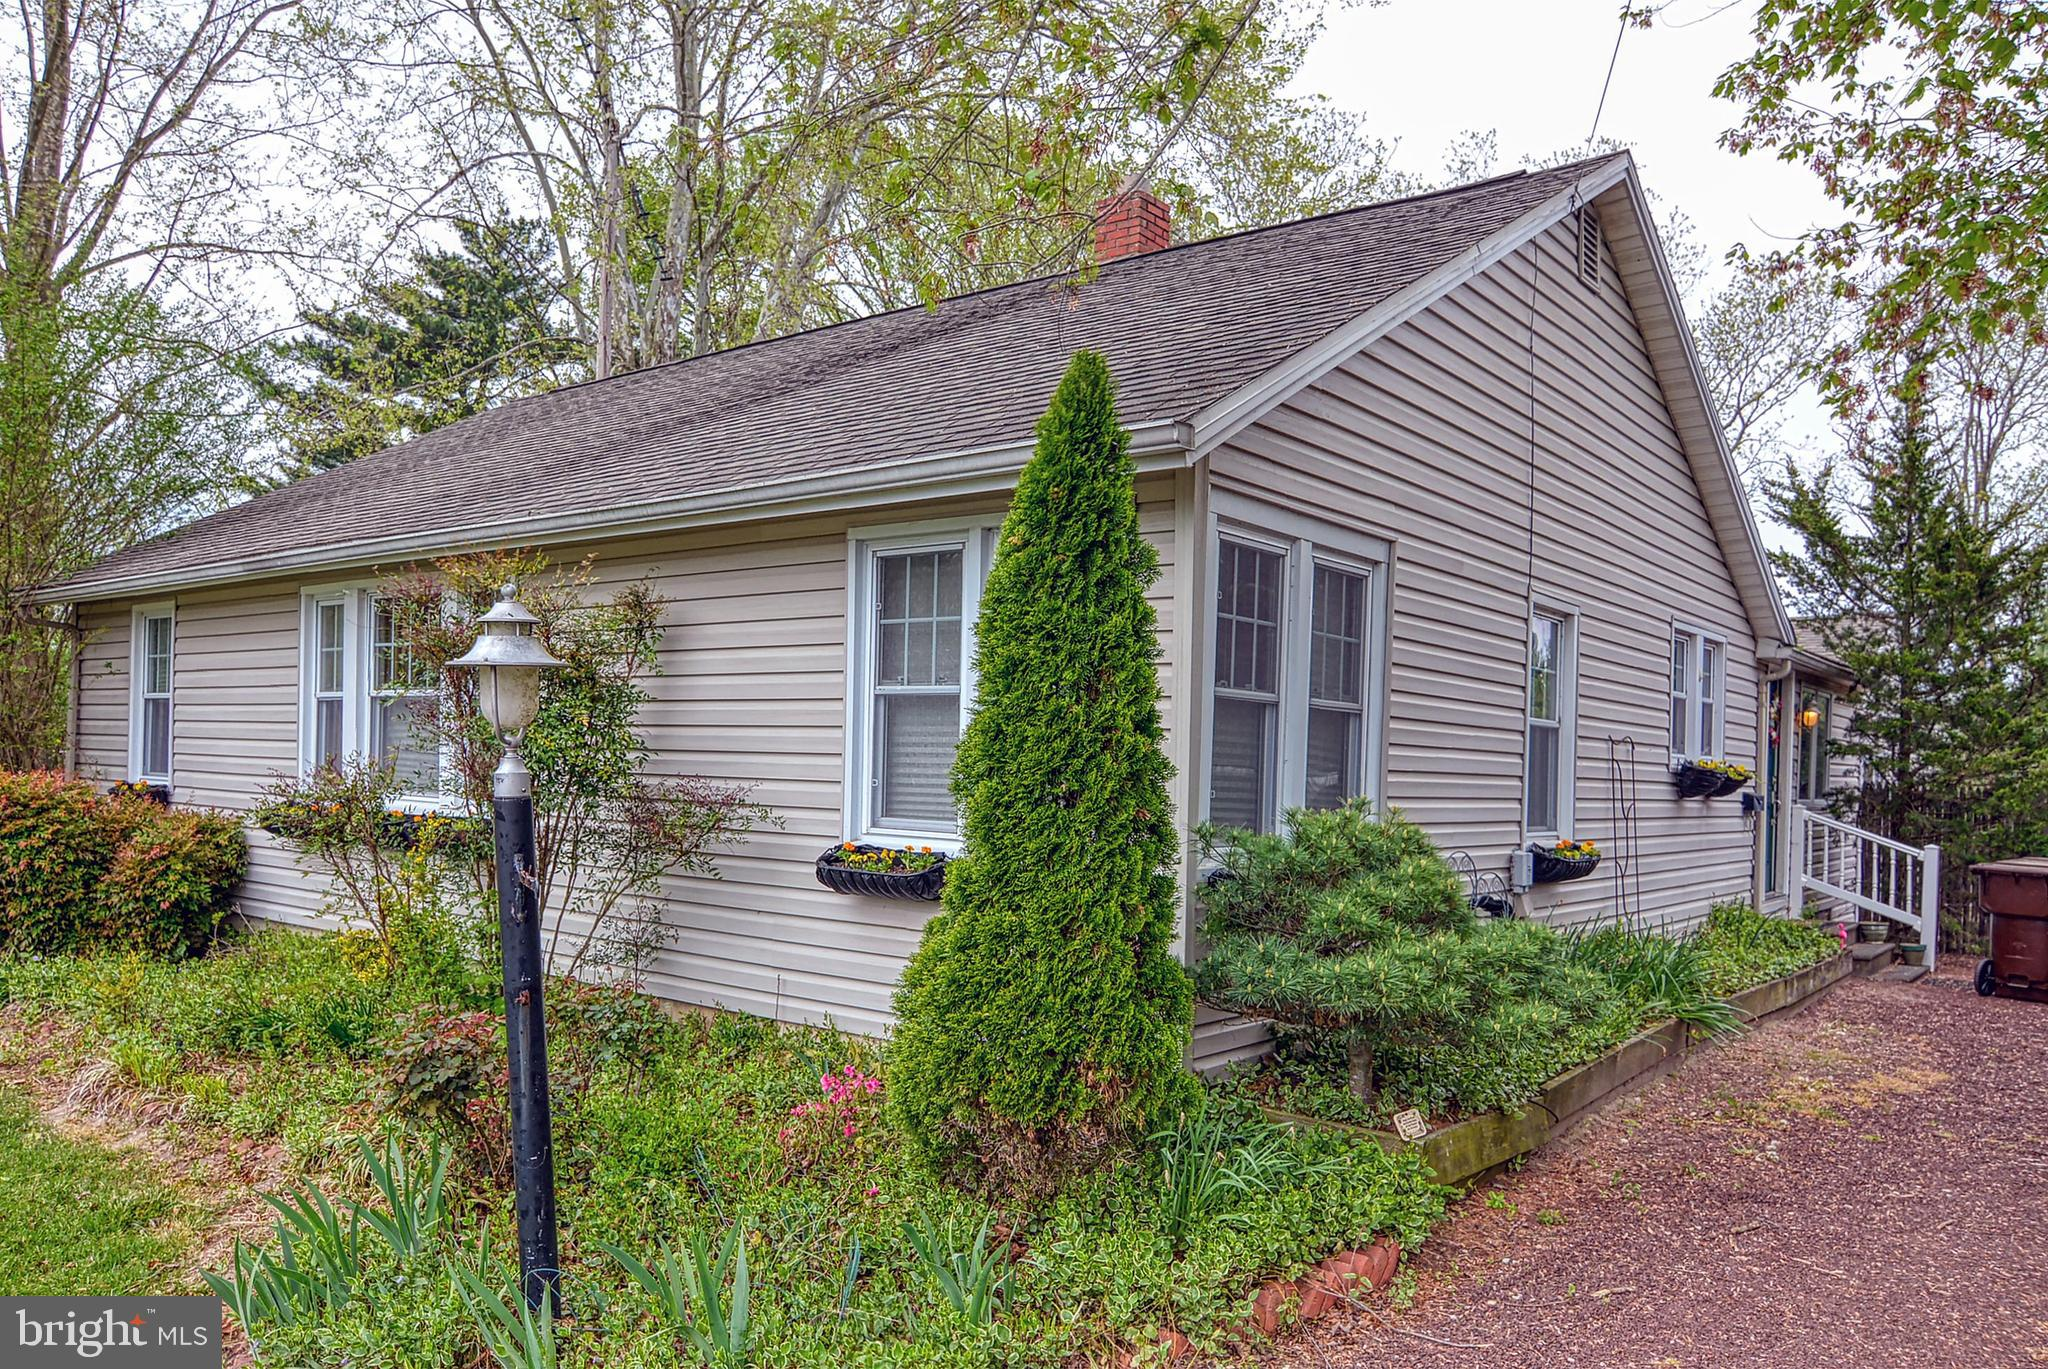 5614 GALESTOWN NEWHART MILL ROAD, GALESTOWN, MD 21659